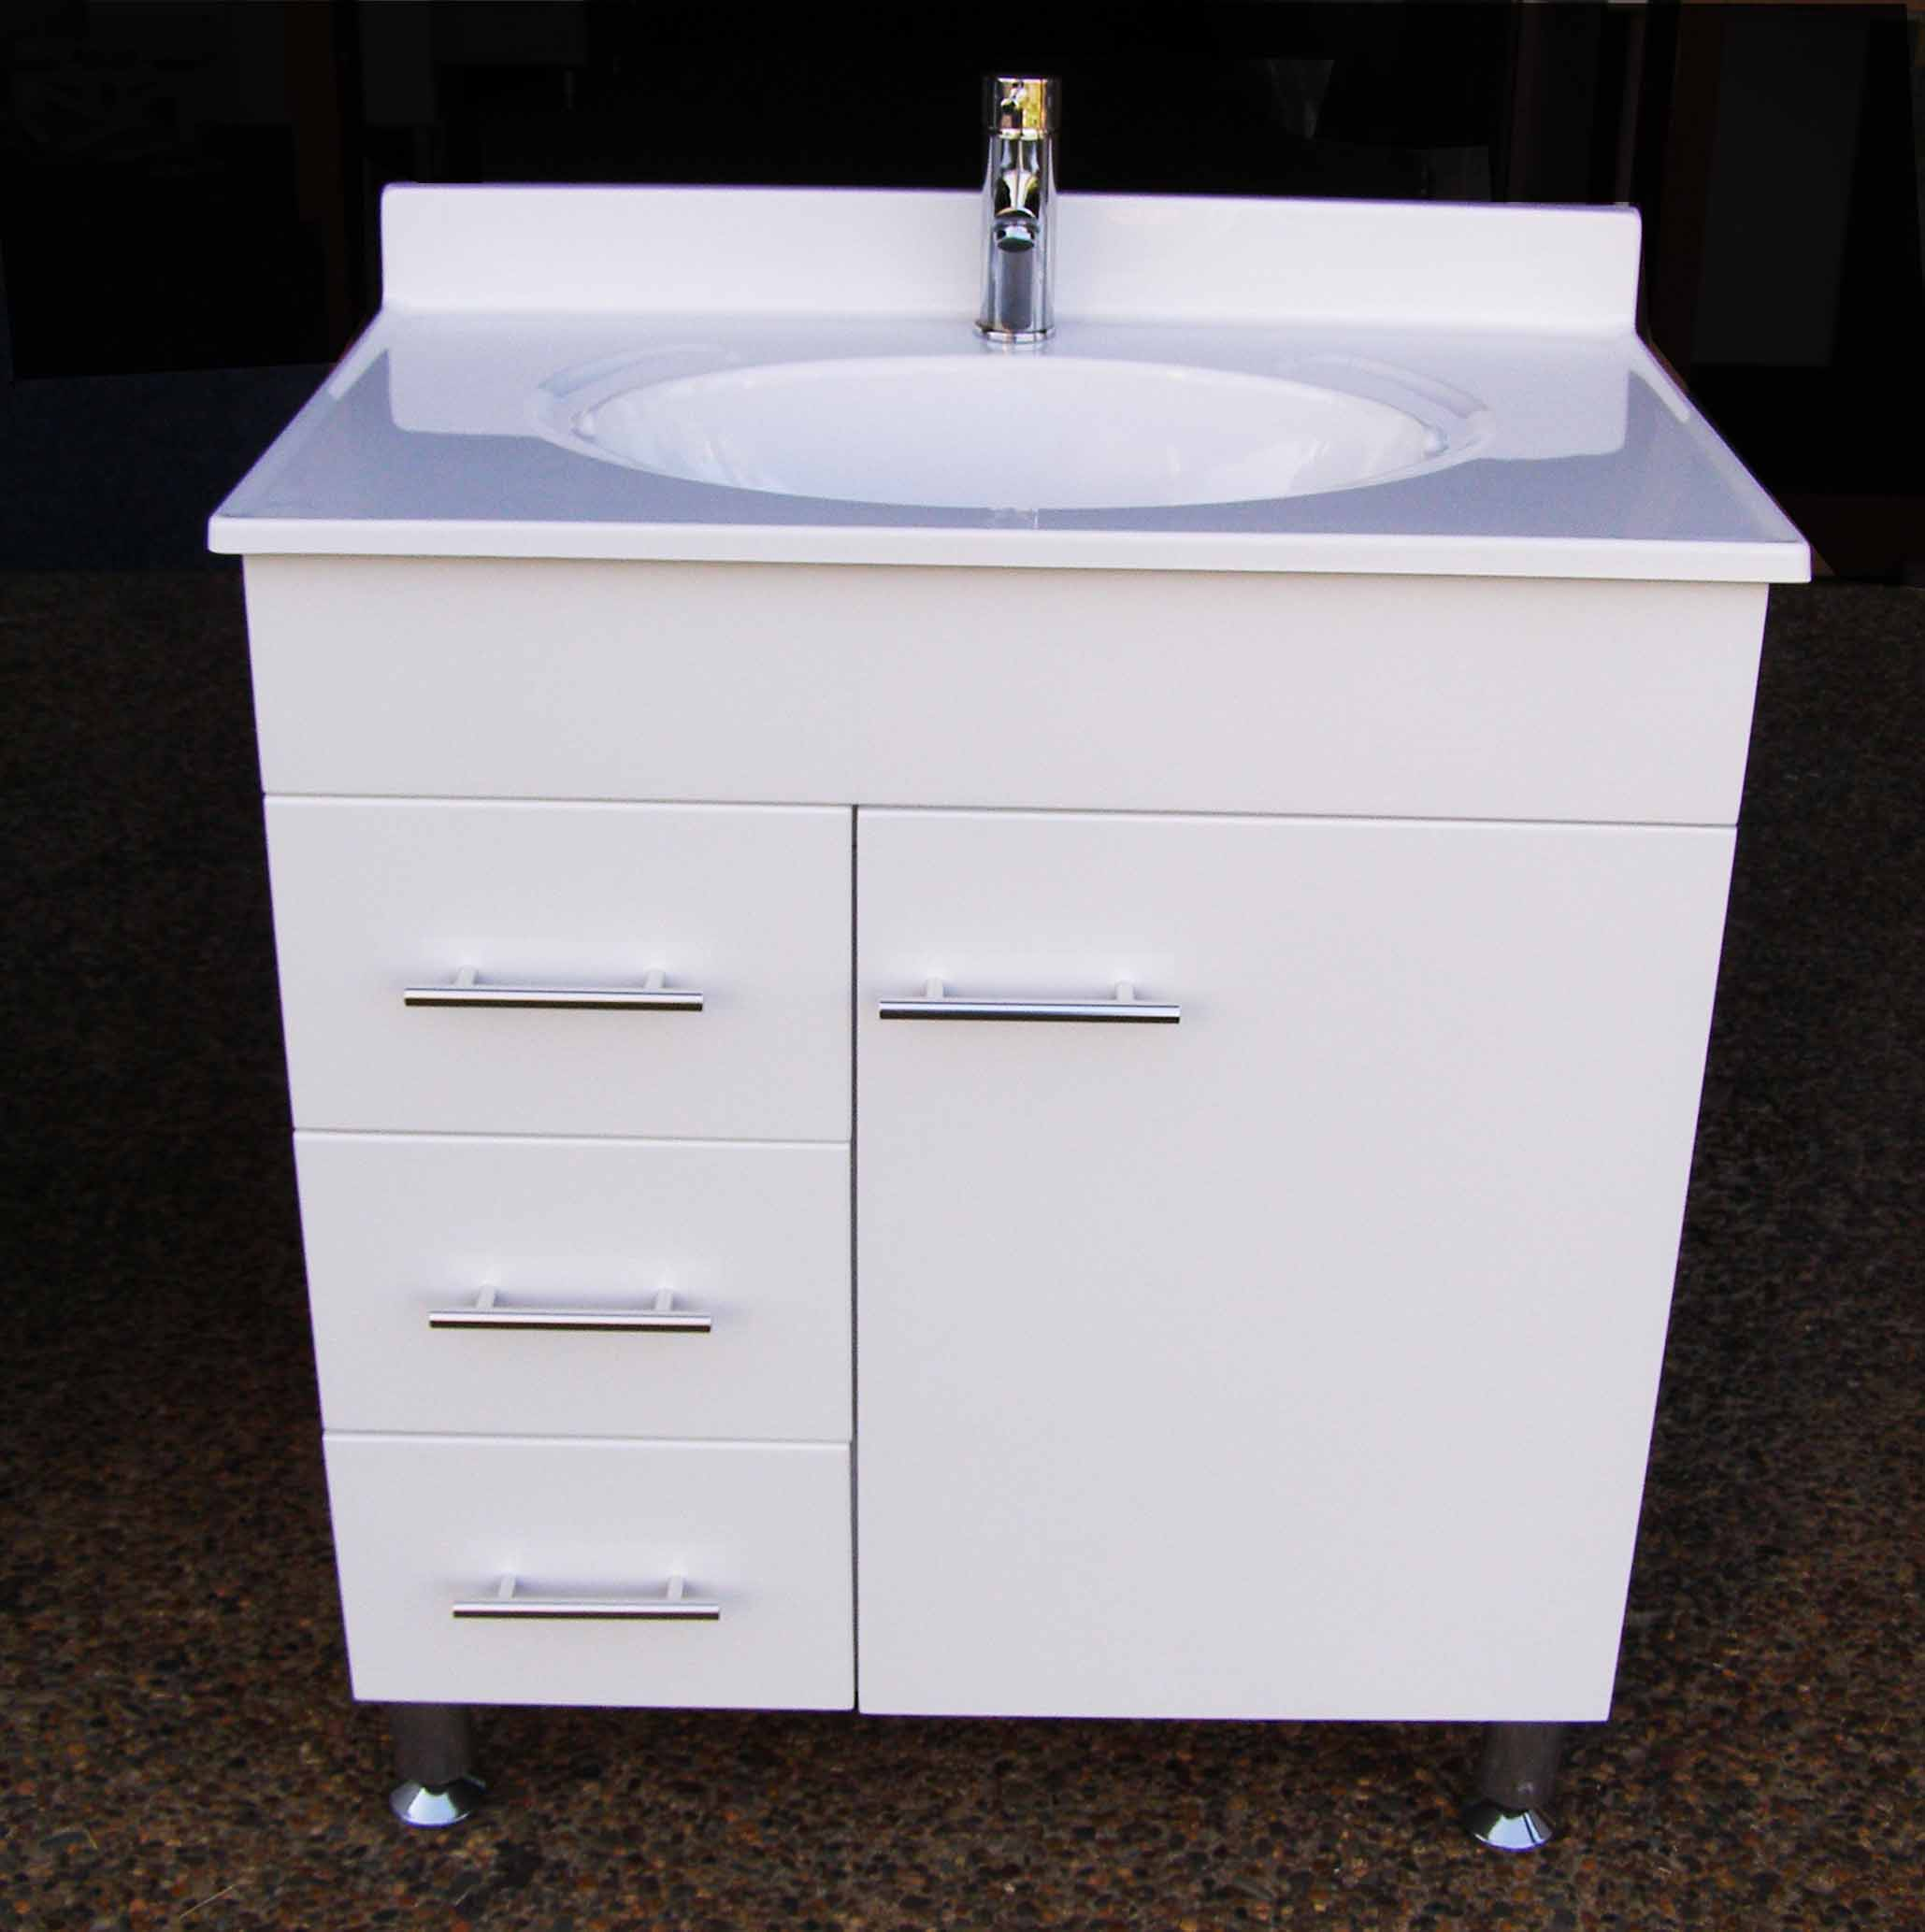 Bathroom Vanity Units Sydney Daedalus Wpl750l 750mm Bathroom Vanity Unit With